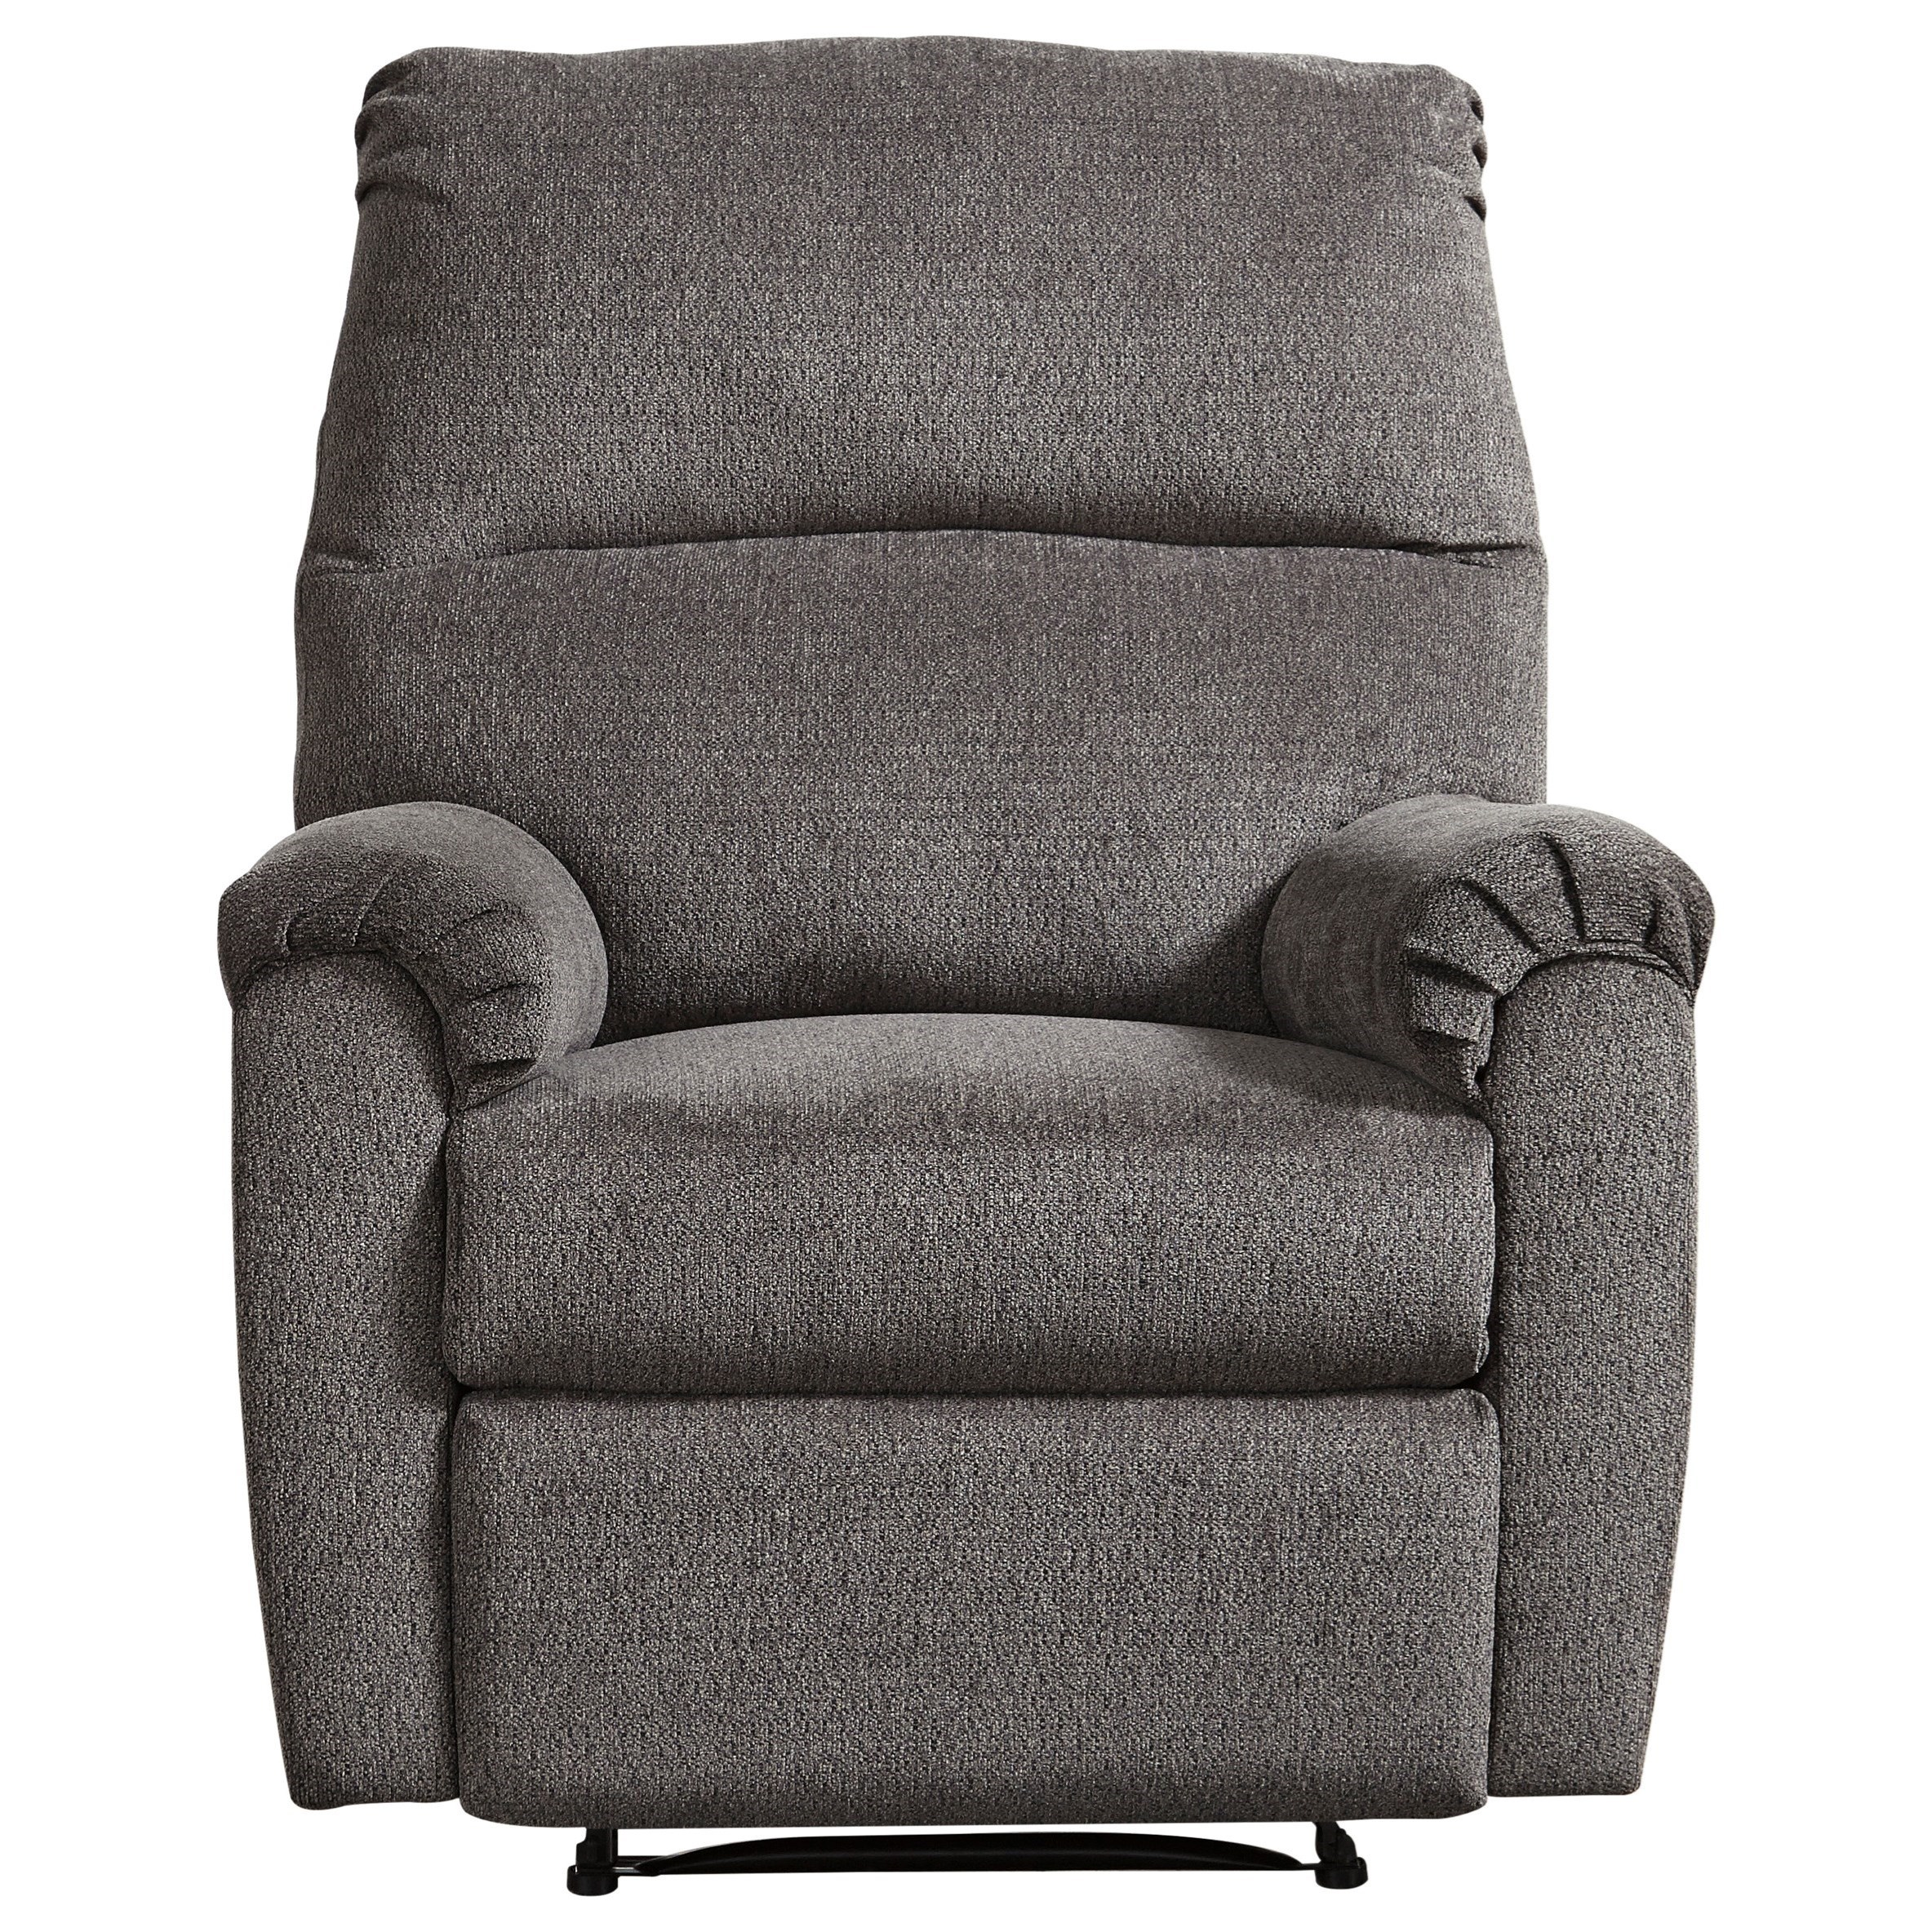 Nevin Zero Wall Recliner by Signature at Walker's Furniture